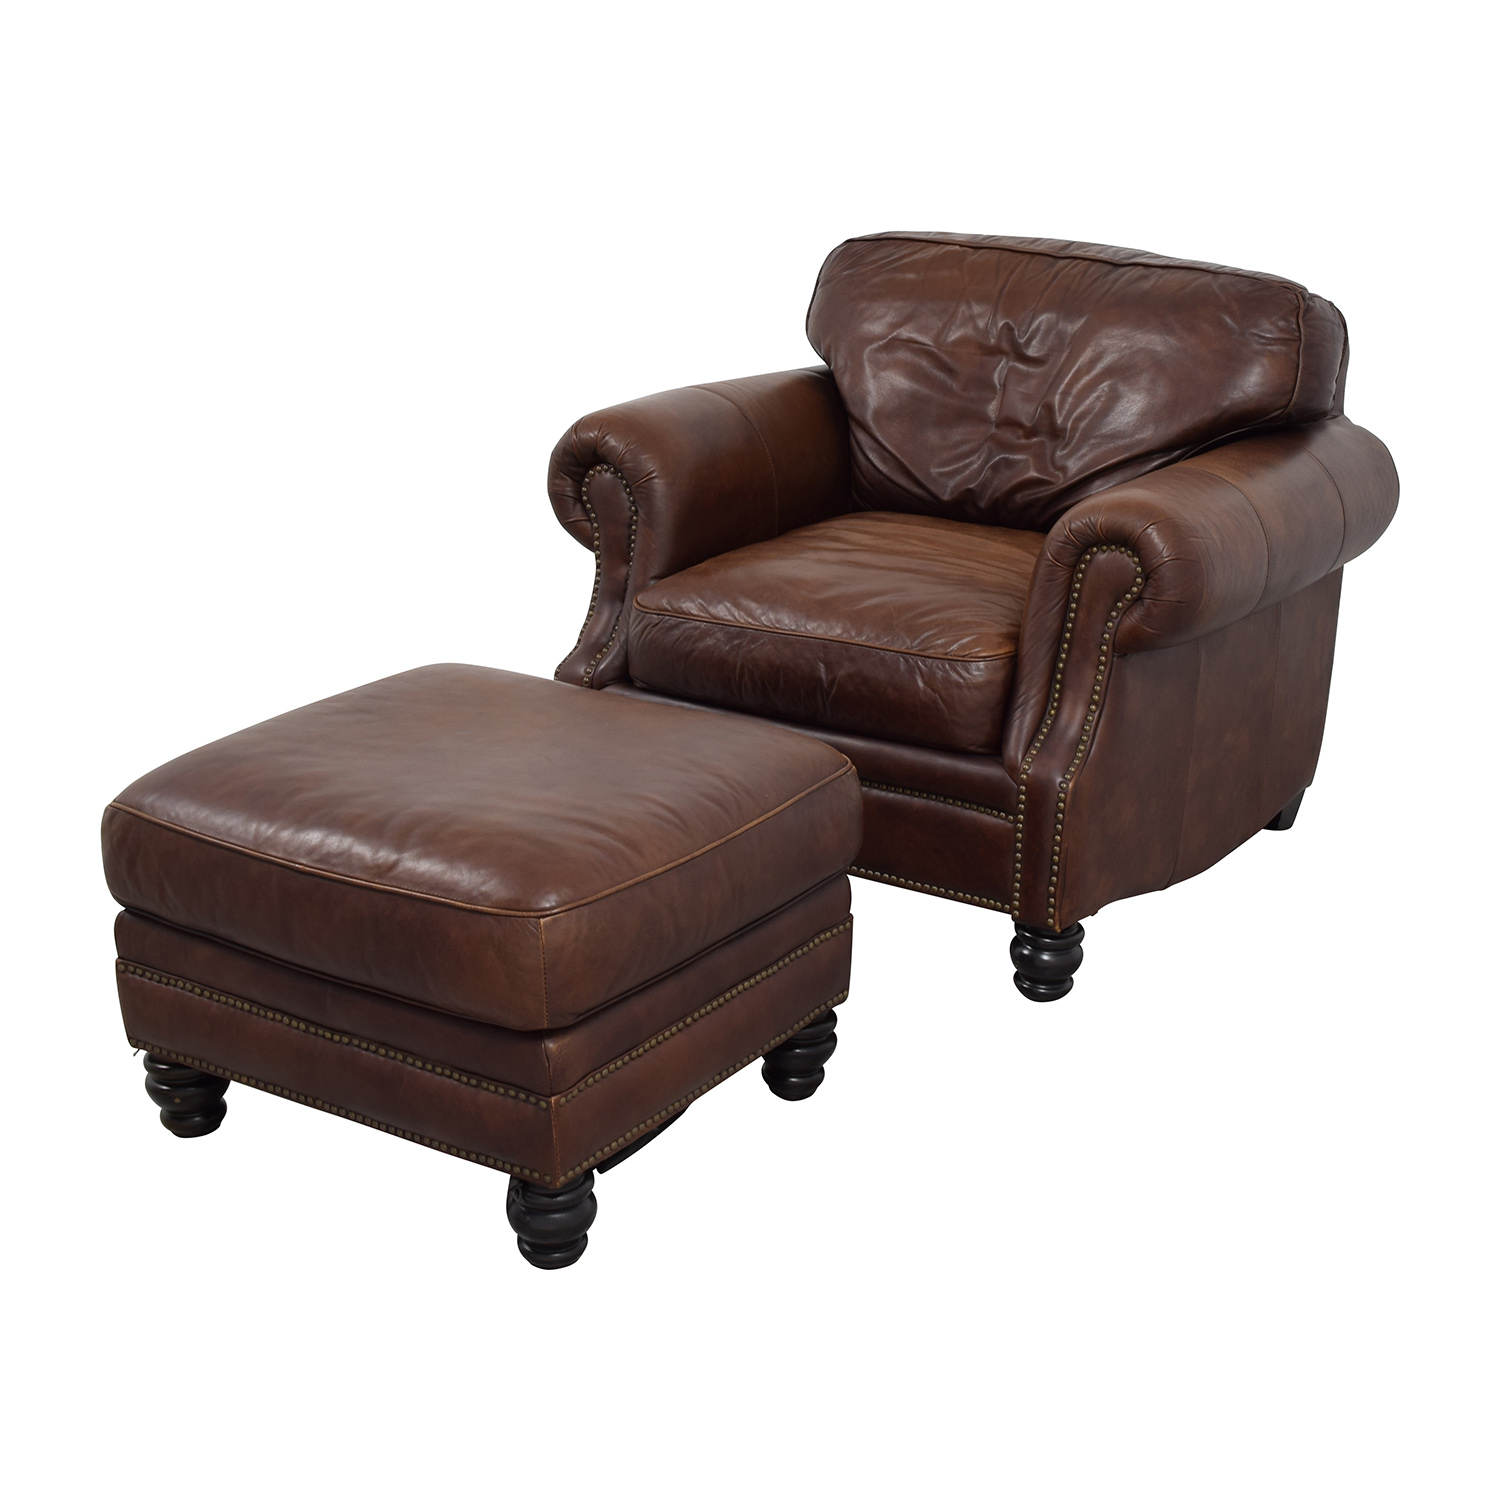 Brown Leather Studded Armchair with Matching Ottoman dimensions